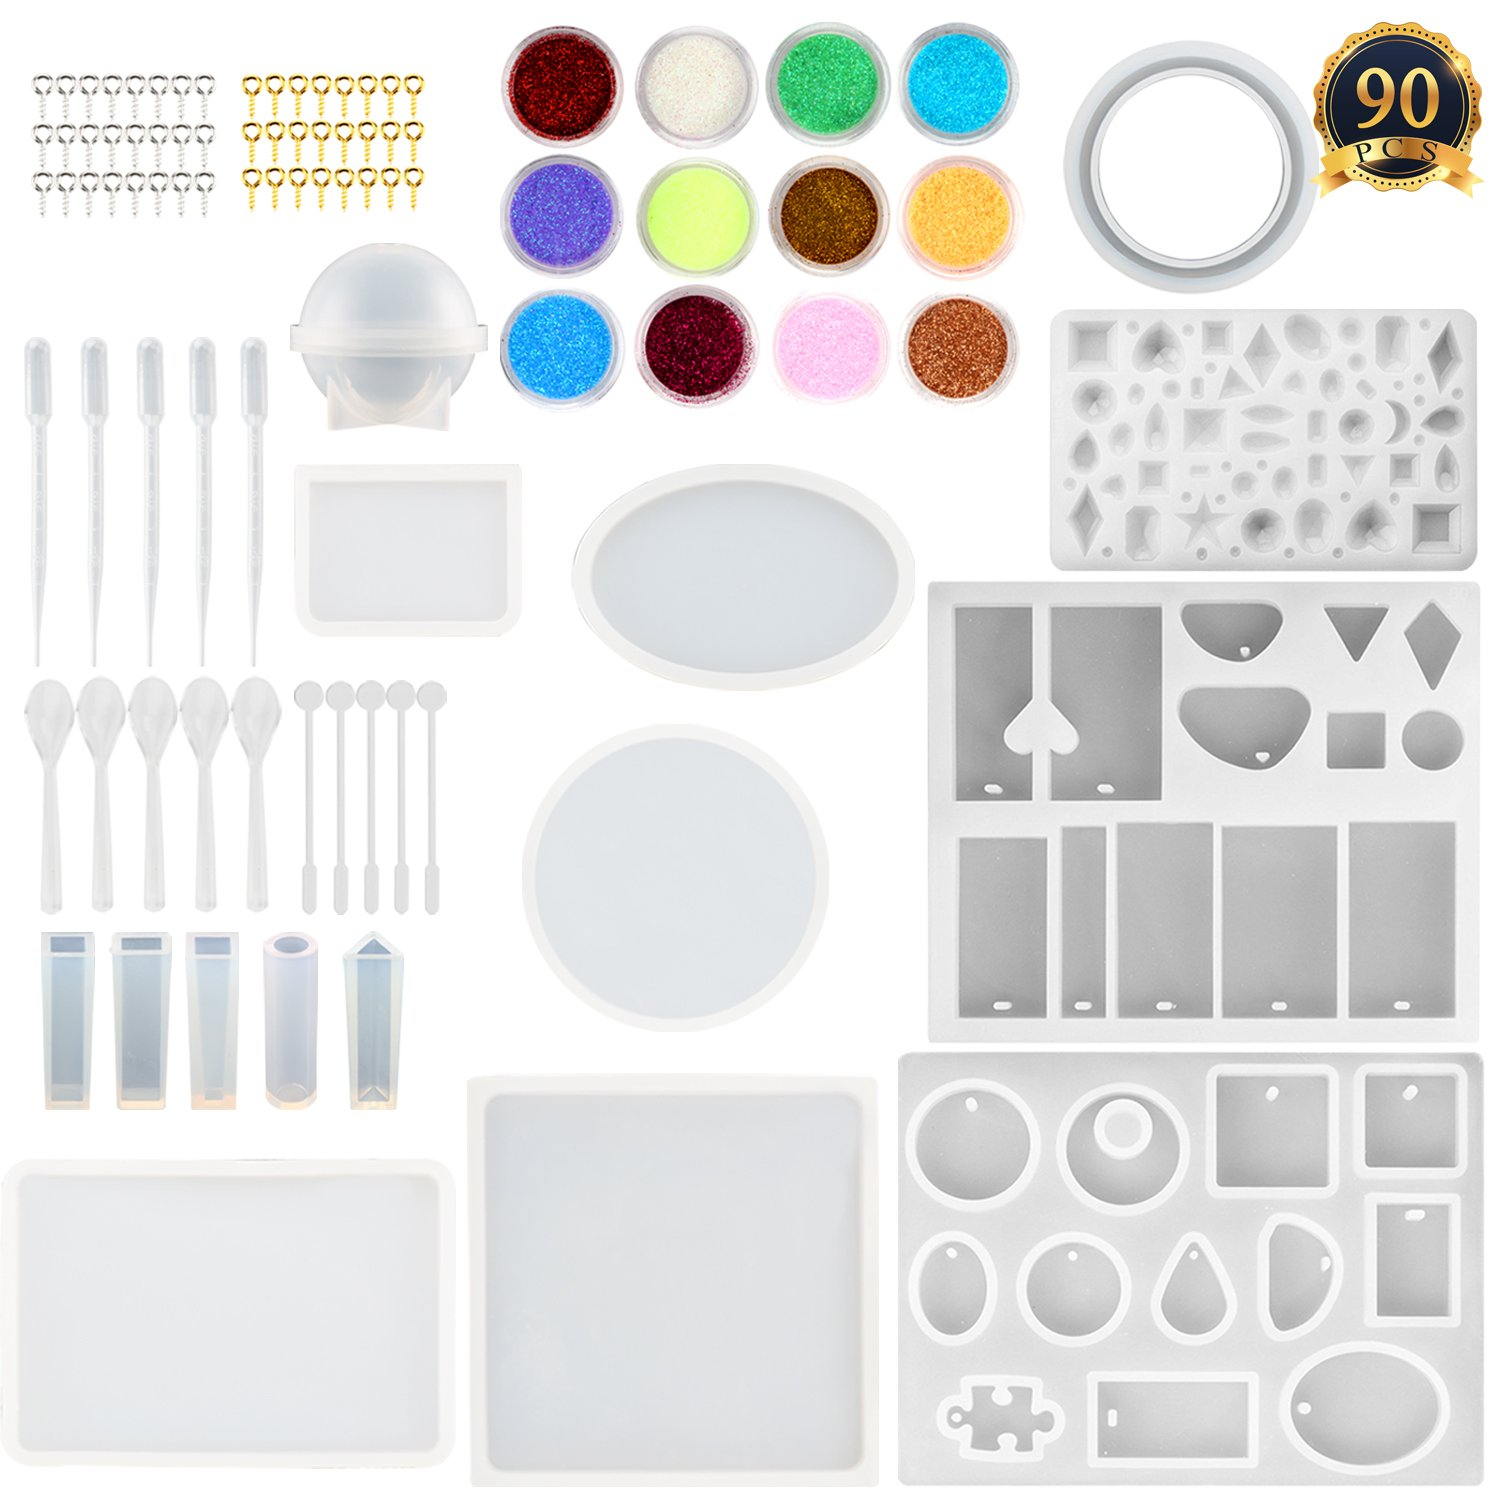 SUBANG 15 Pack Jewelry Casting Molds Silicone Resin Jewelry Molds with 48 Screw Eye Pins, 5 Plastic Stirrers, 5 Plastic Spoons, 5 Plastic Droppers and 1 Glitter Powder Sequins